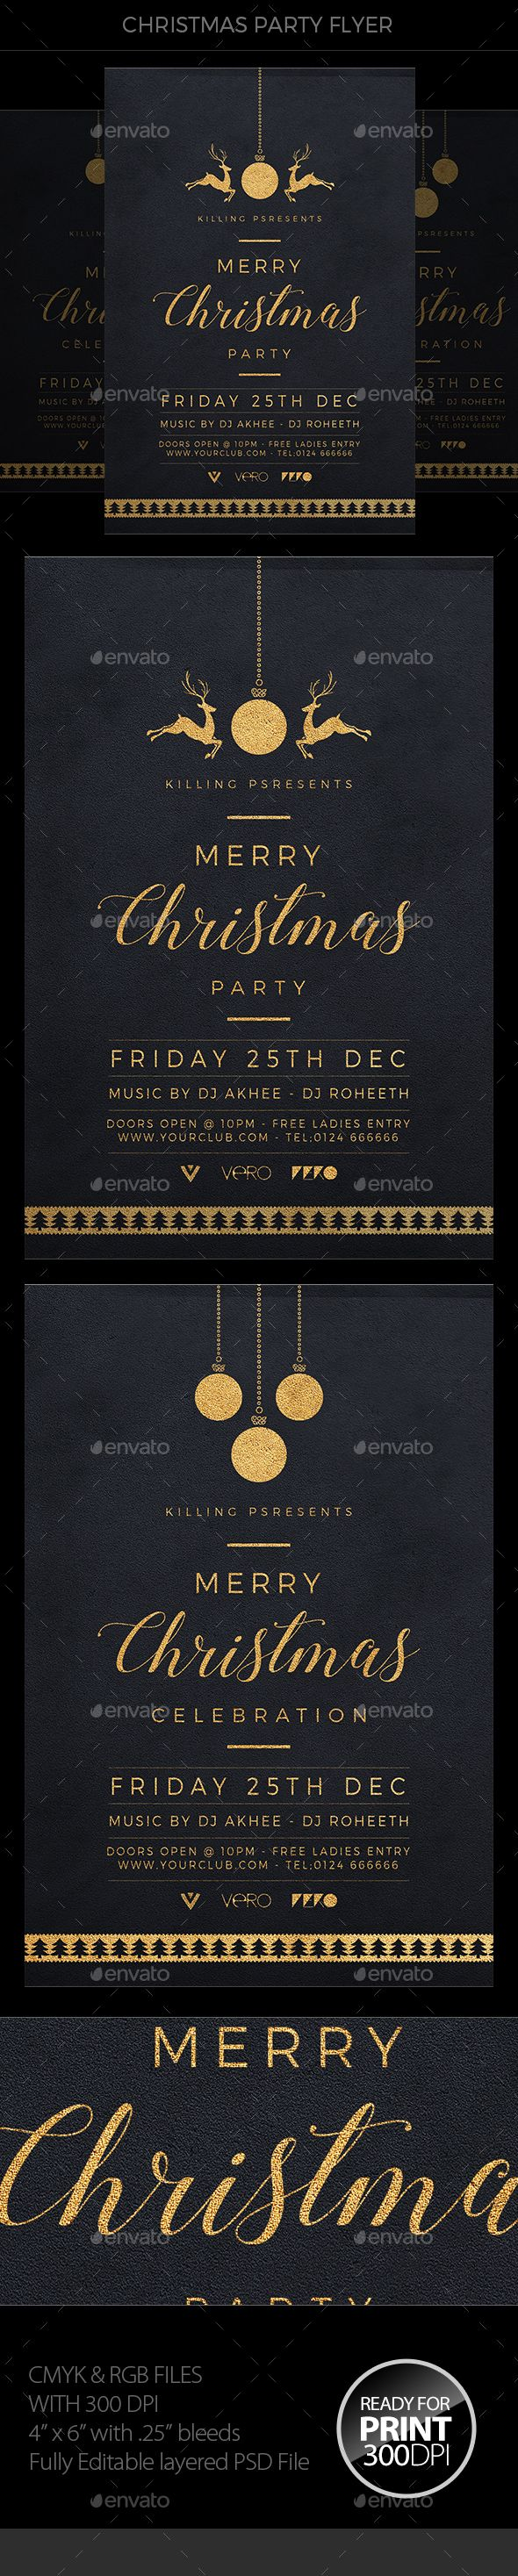 Christmas #Flyer - Clubs & Parties Events Download here: https://graphicriver.net/item/christmas-flyer/18731789?ref=alena994